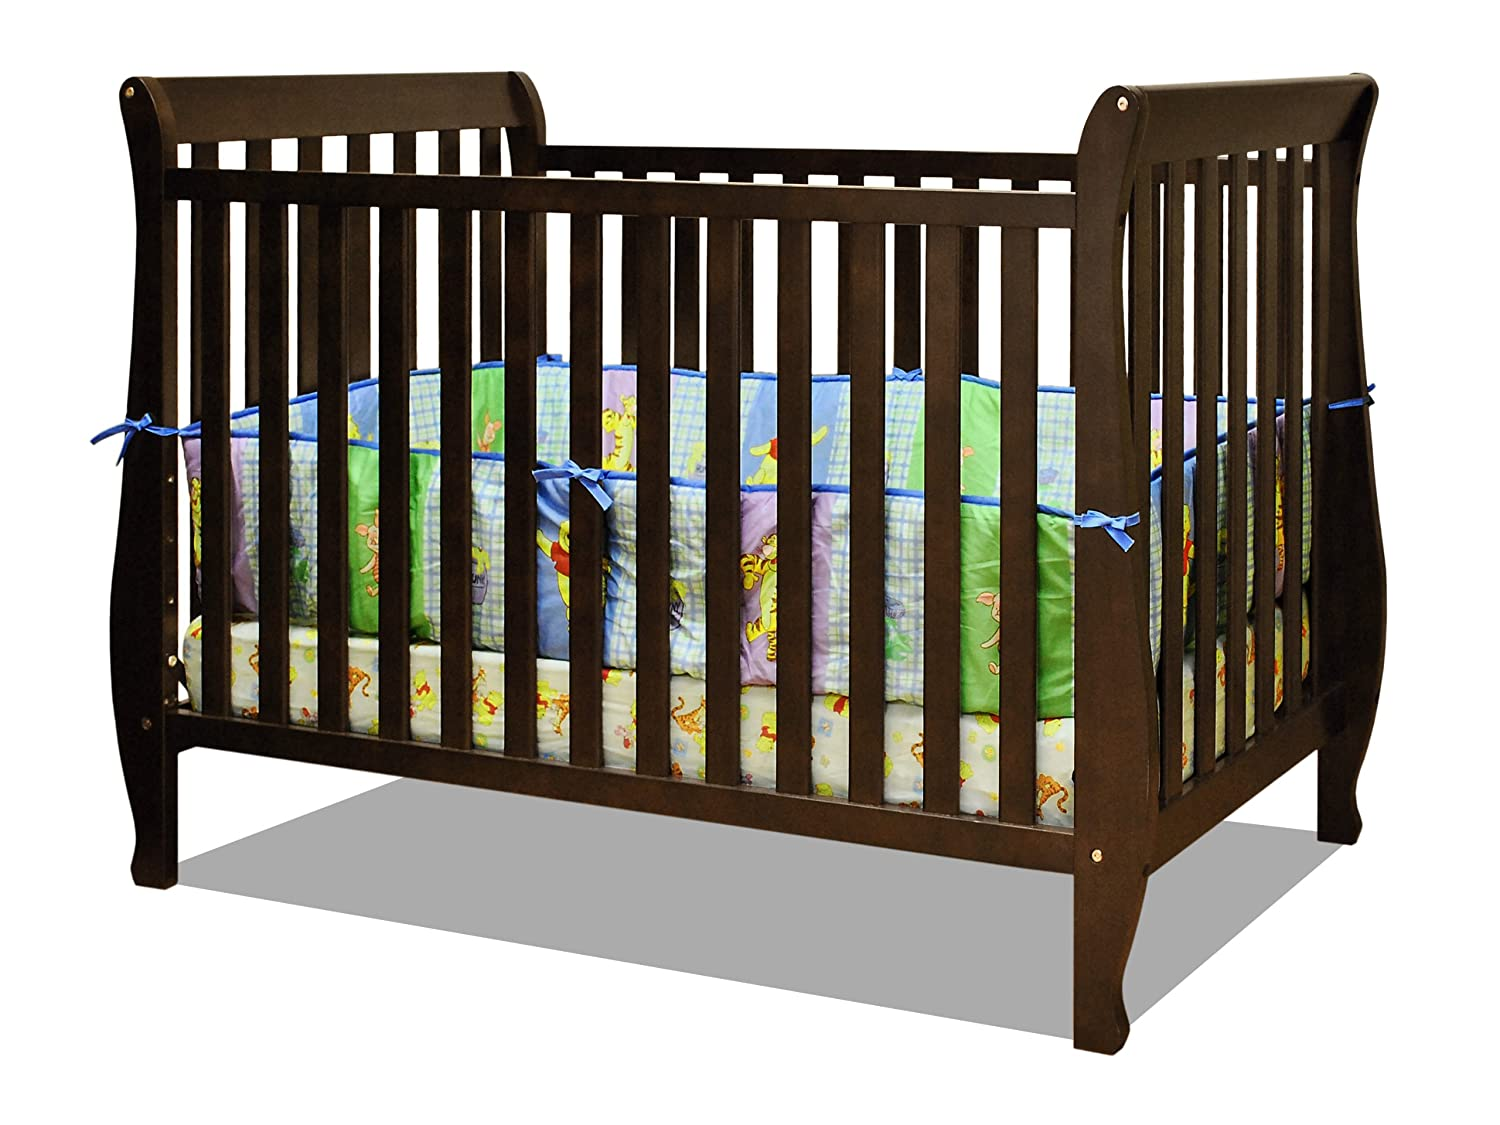 Espresso crib for sale - Amazon Com Athena Naomi 4 In 1 Crib With Toddler Rail Espresso Toddler Beds Baby